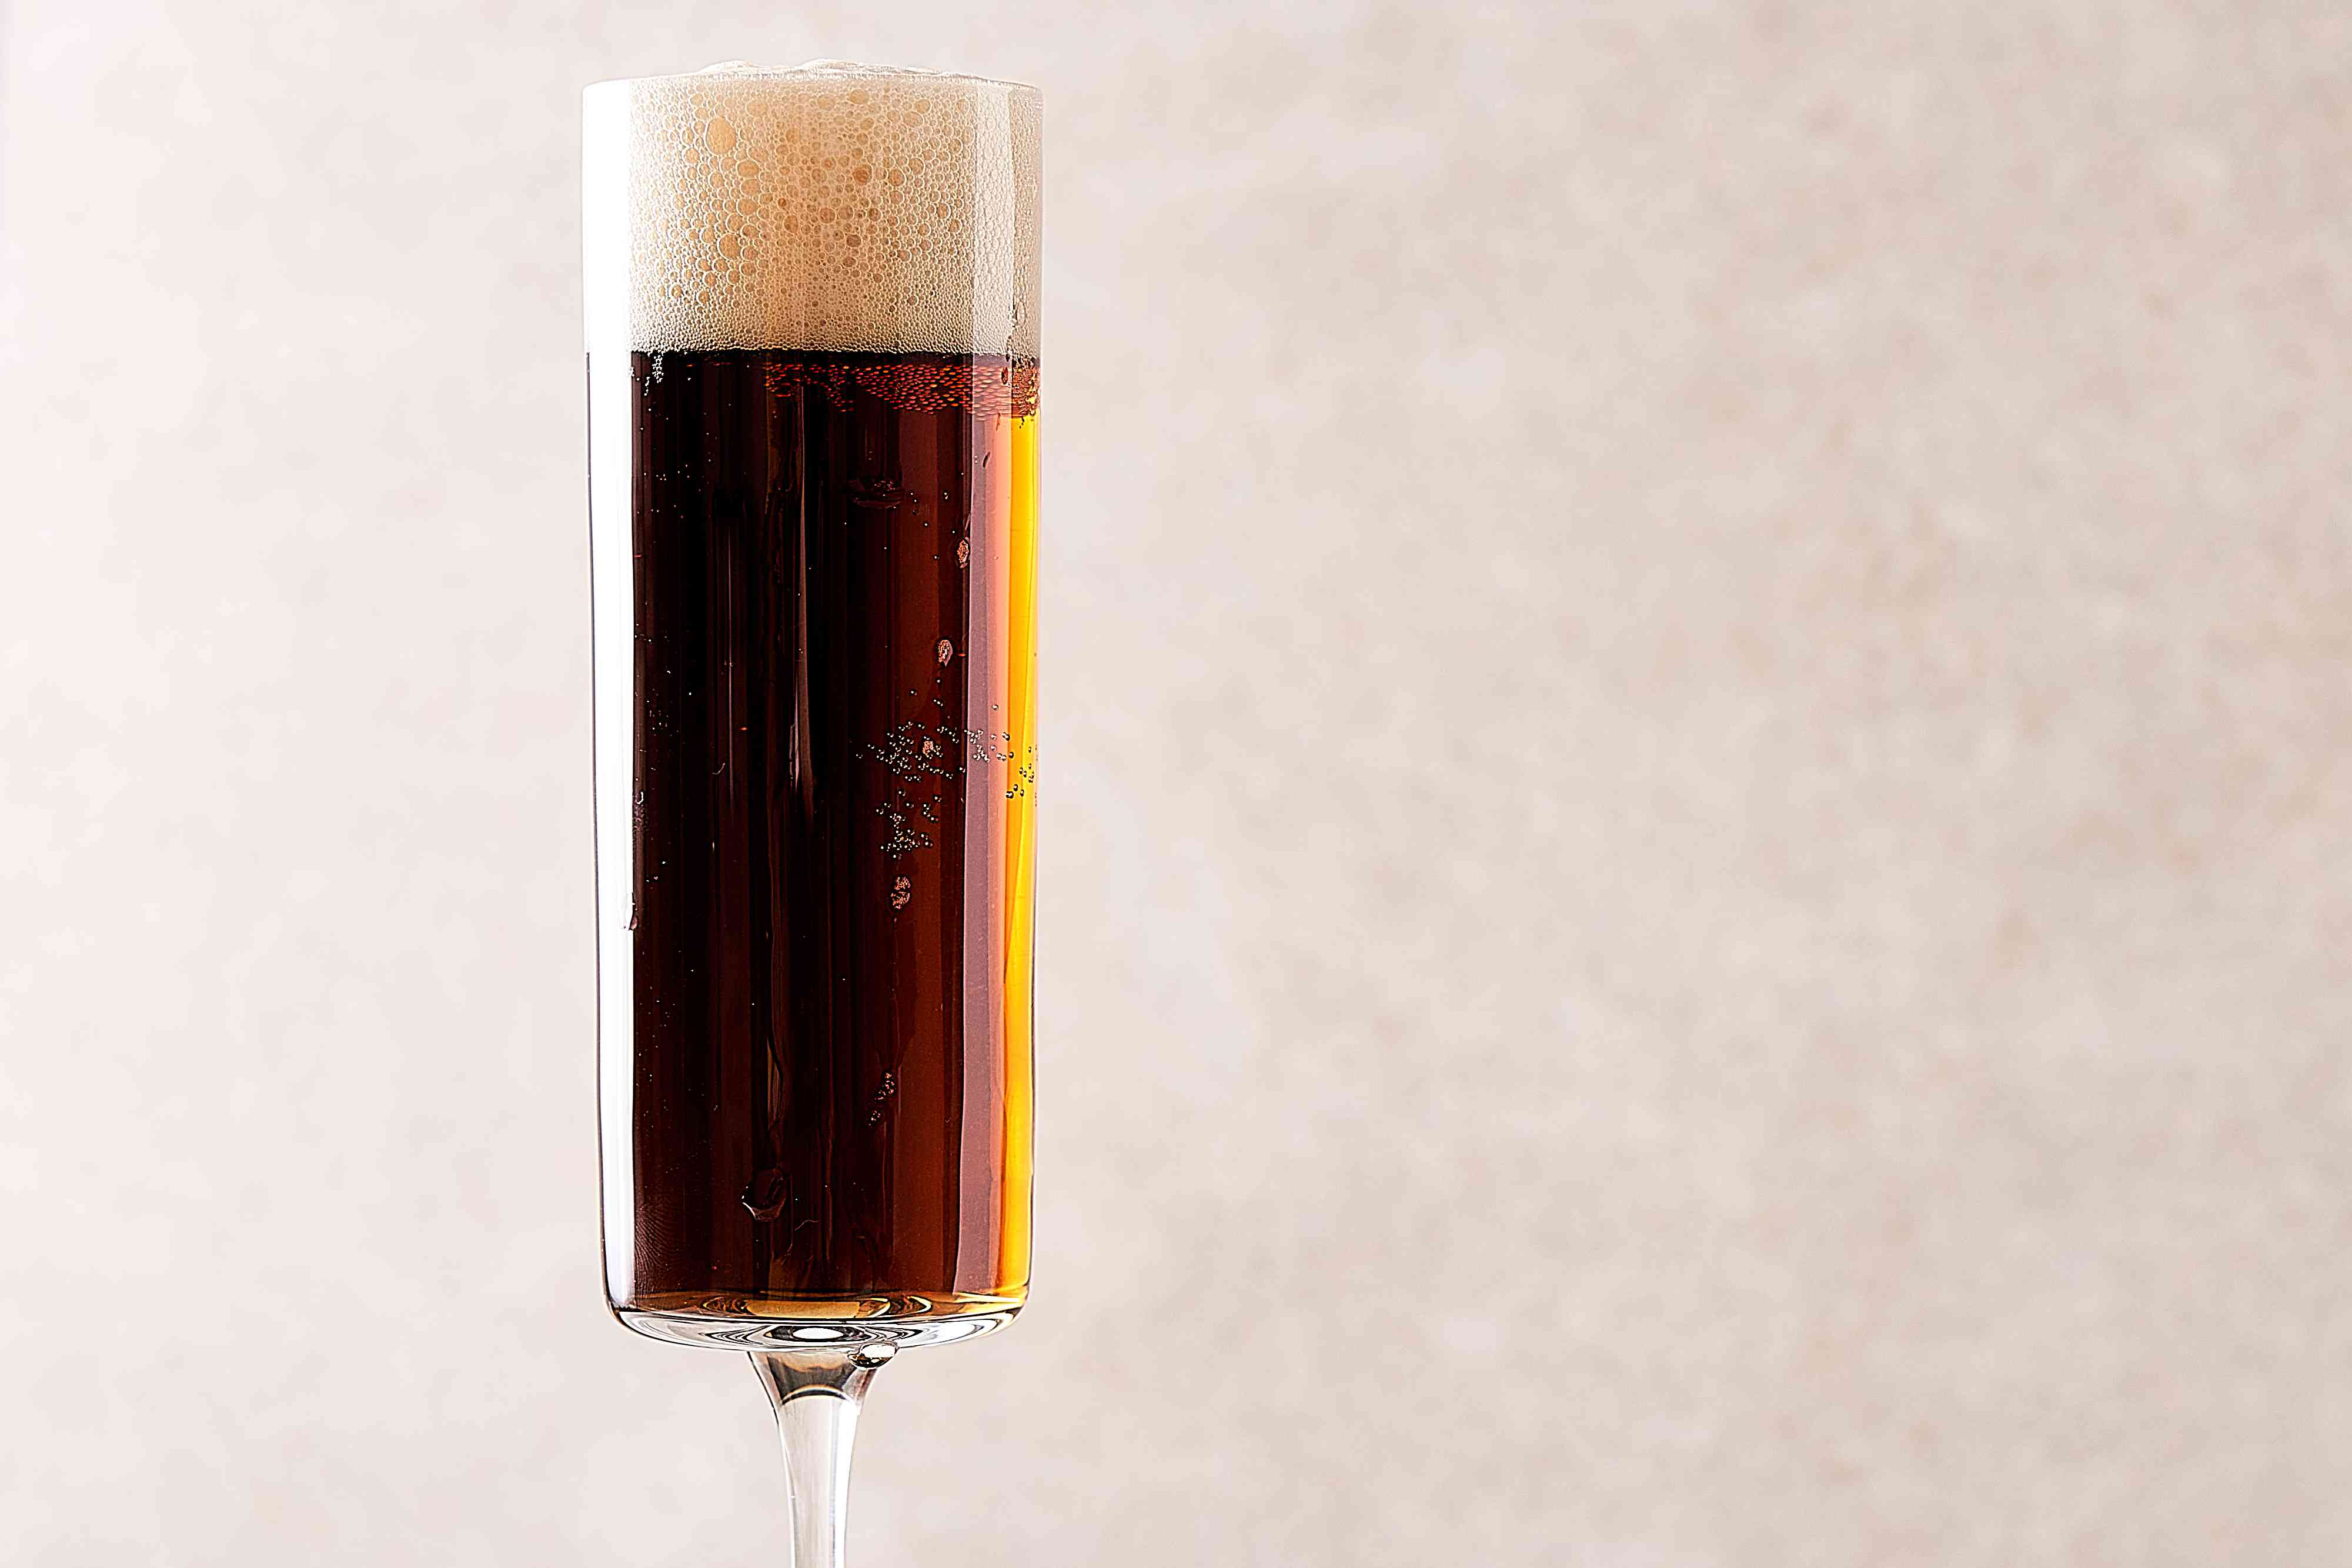 stout poured on top of champagne in glass